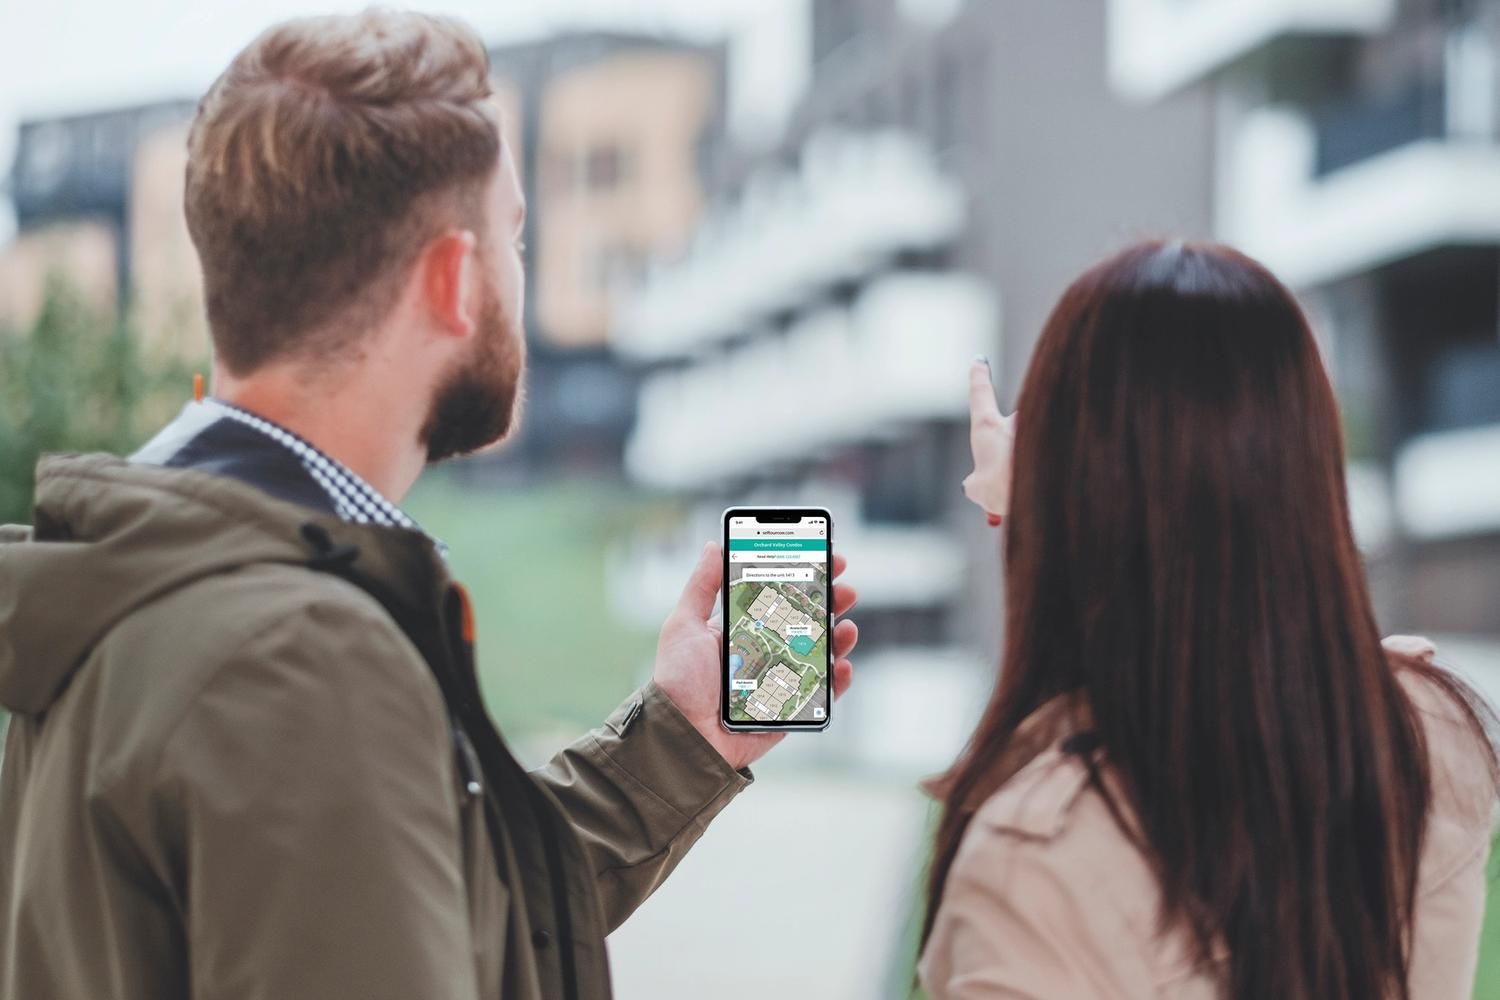 man and woman looking at phone with map pointing forward